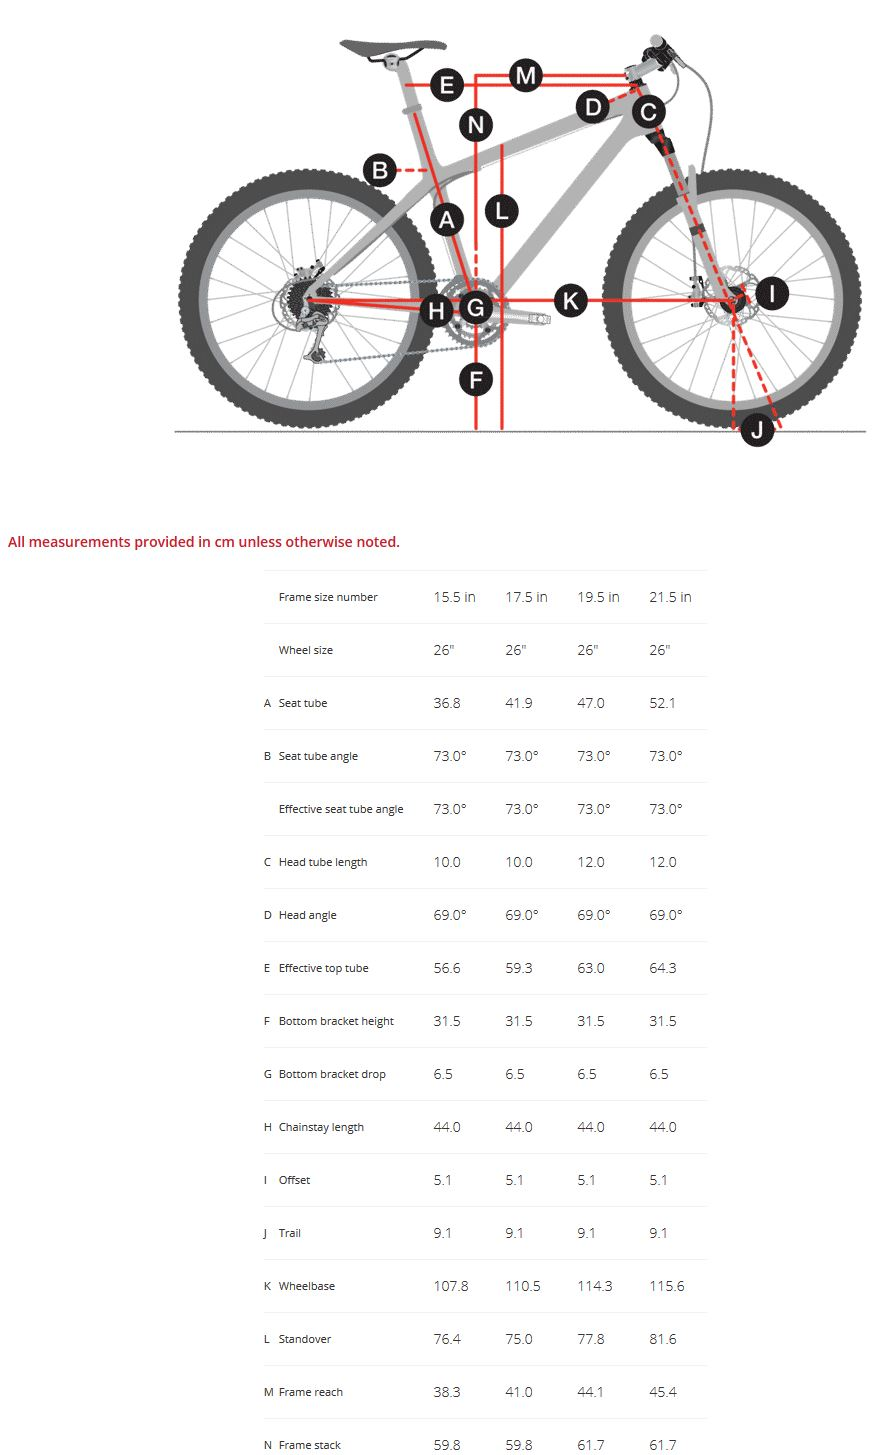 Trek Farley Alloy geometry chart